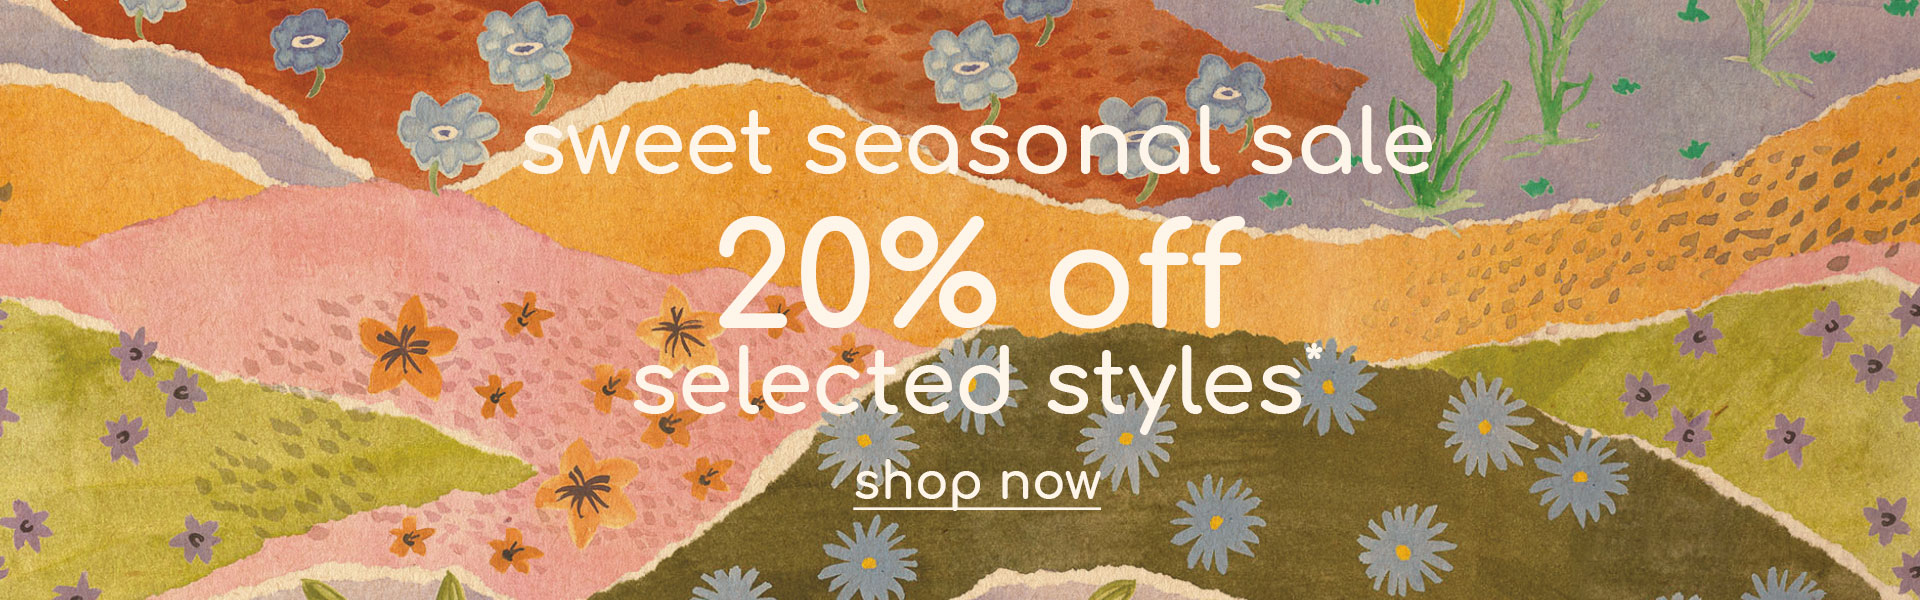 20% off selected new arrivals